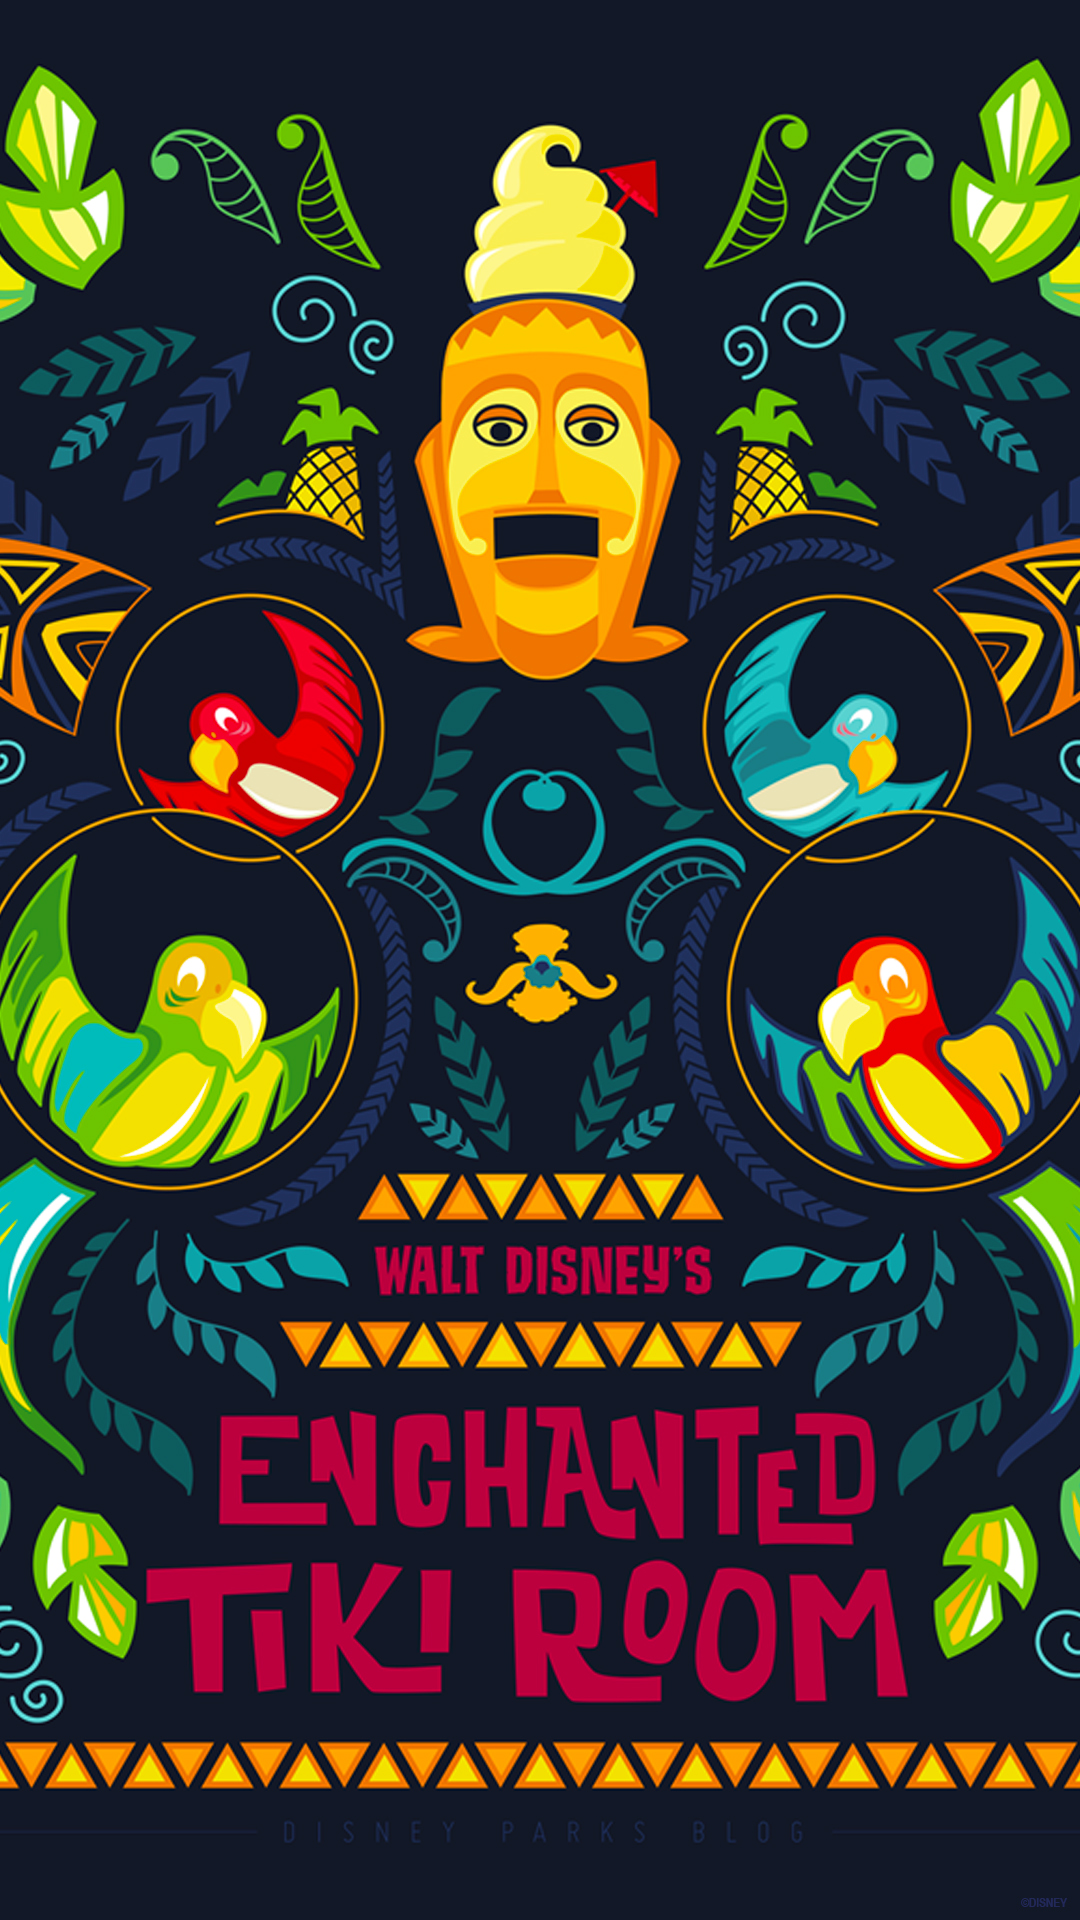 45th Anniversary Wallpaper Walt Disney S Enchanted Tiki